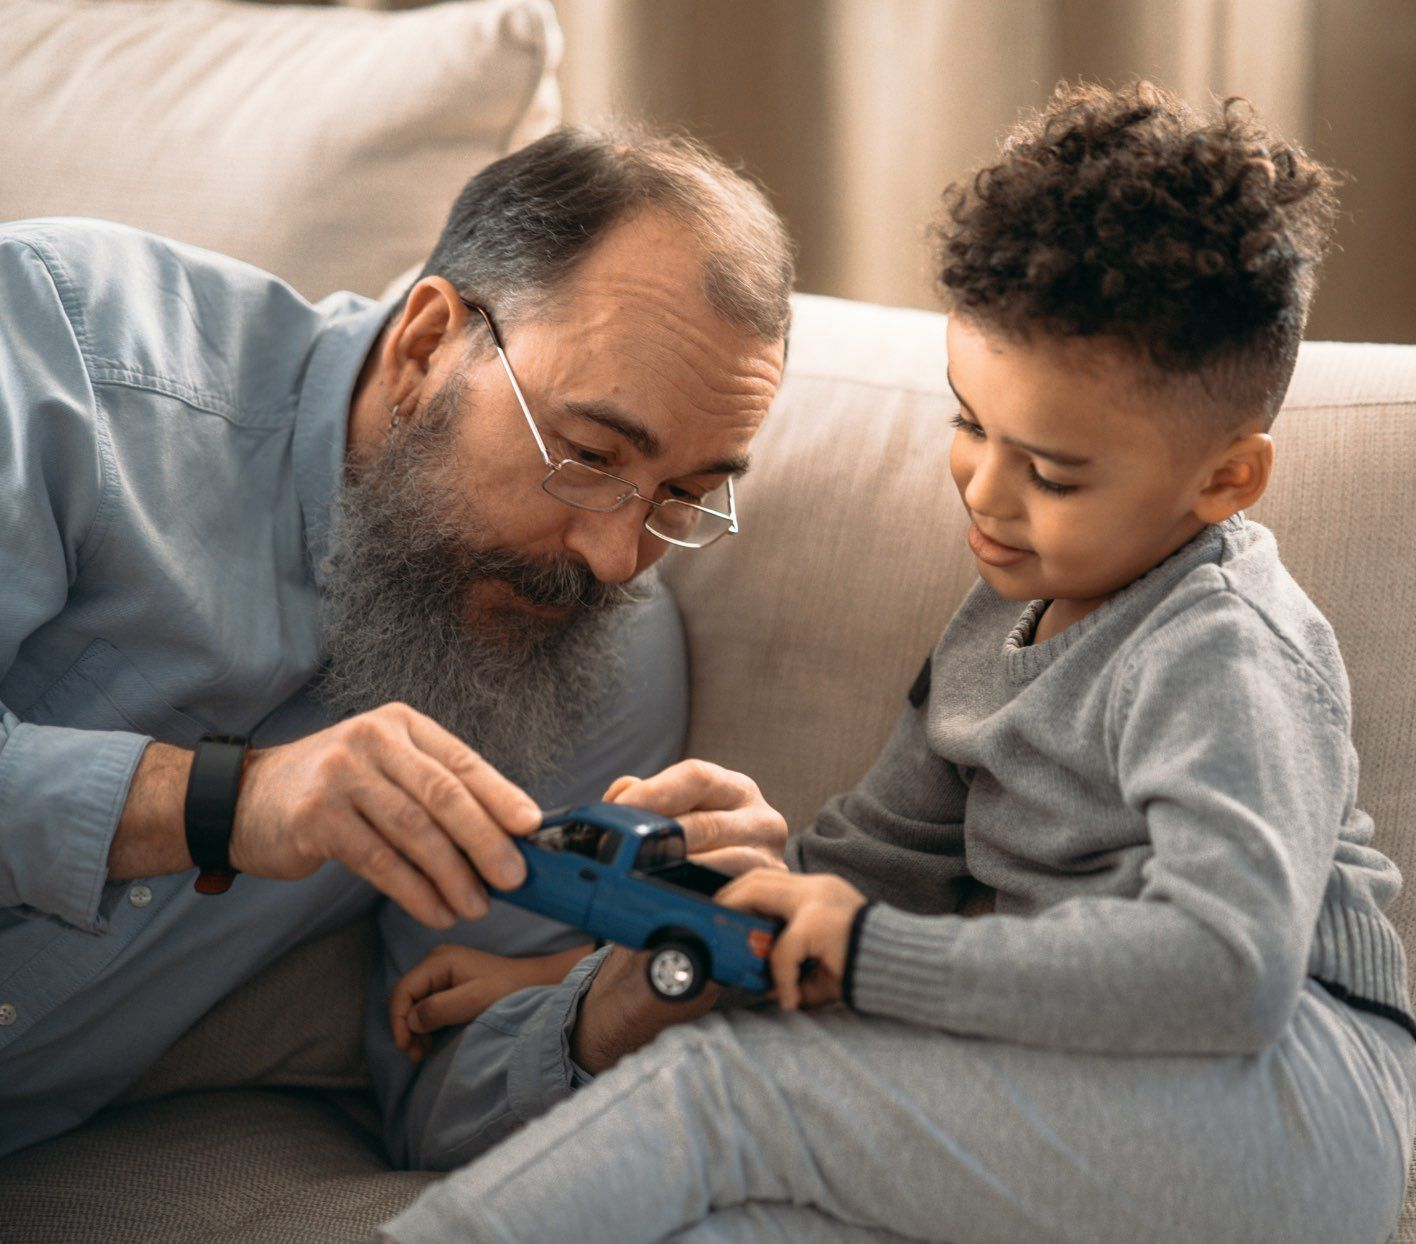 Grandfather playing with young grandson on couch.